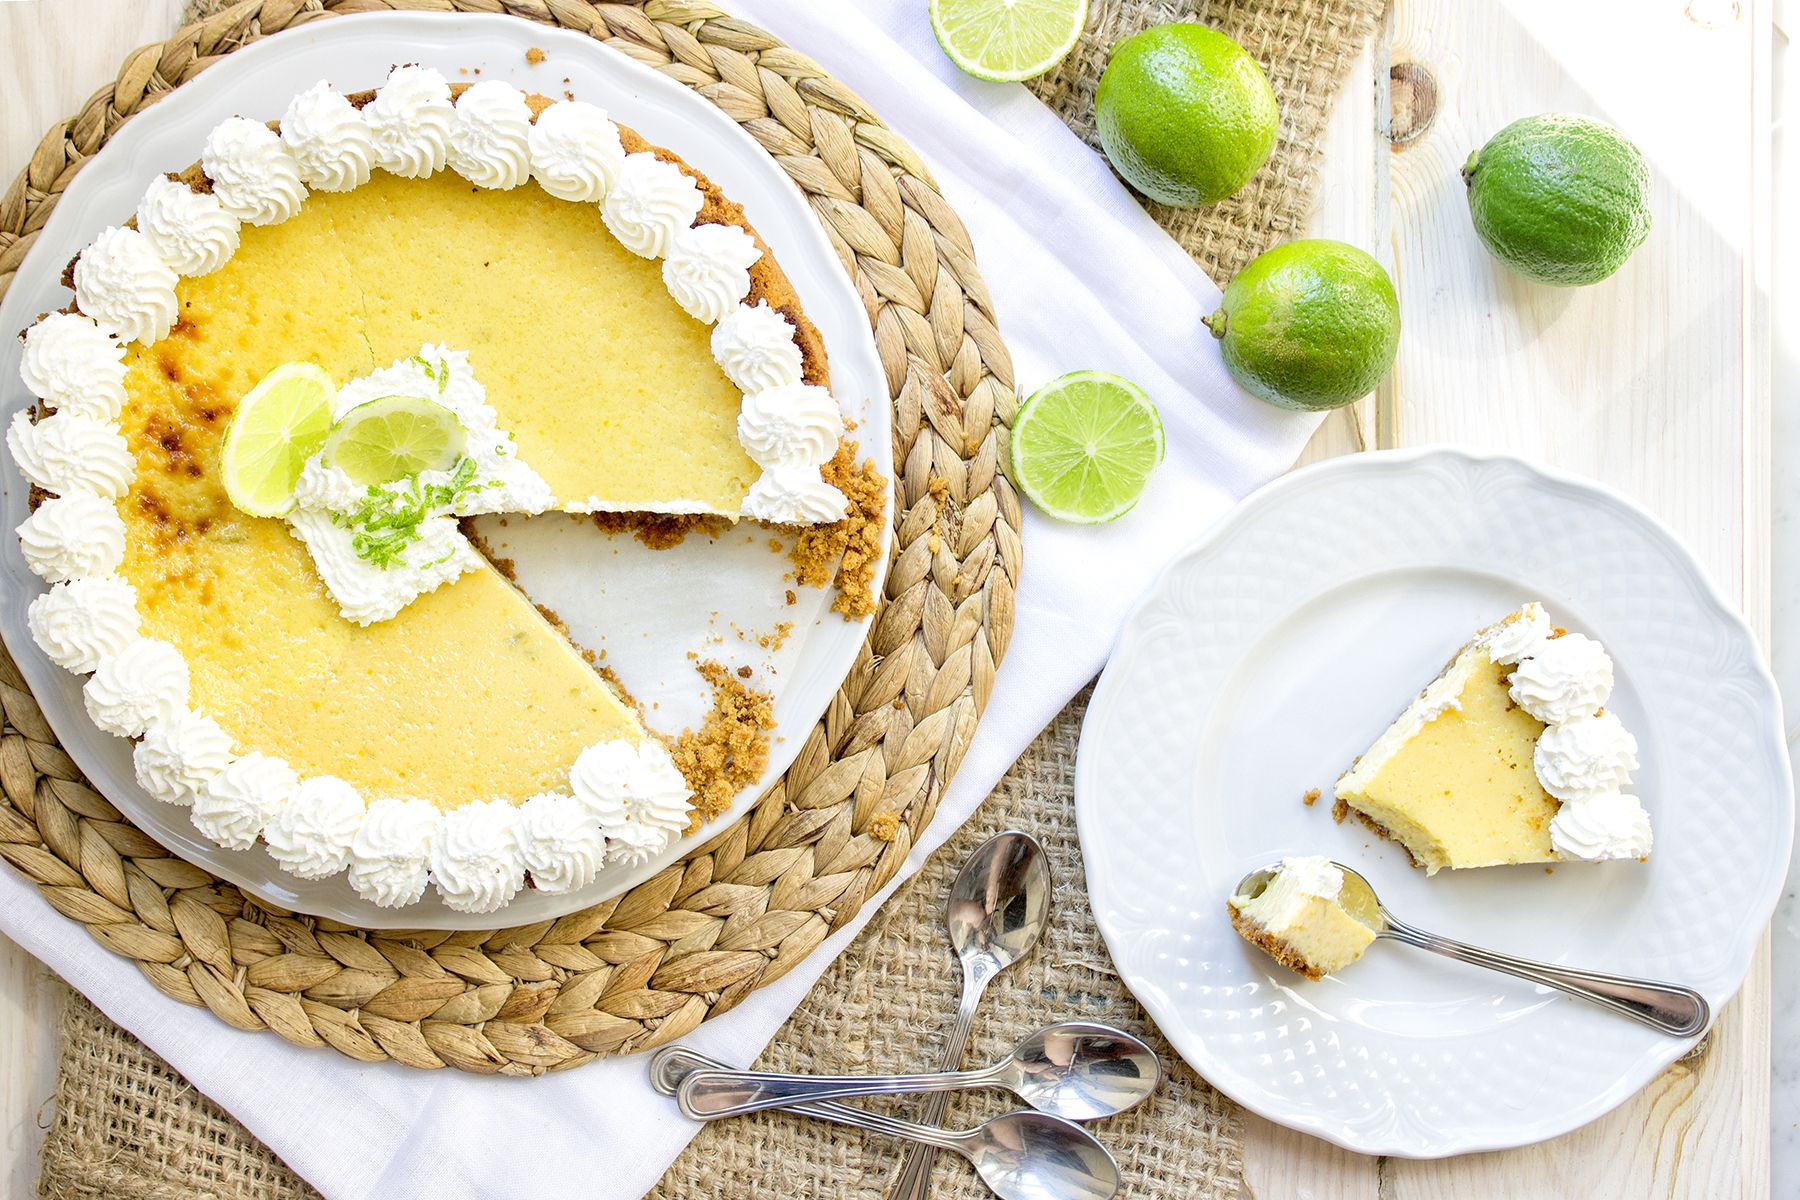 key-lime-pie-ricette-veloci-torta-contemporaneo-food